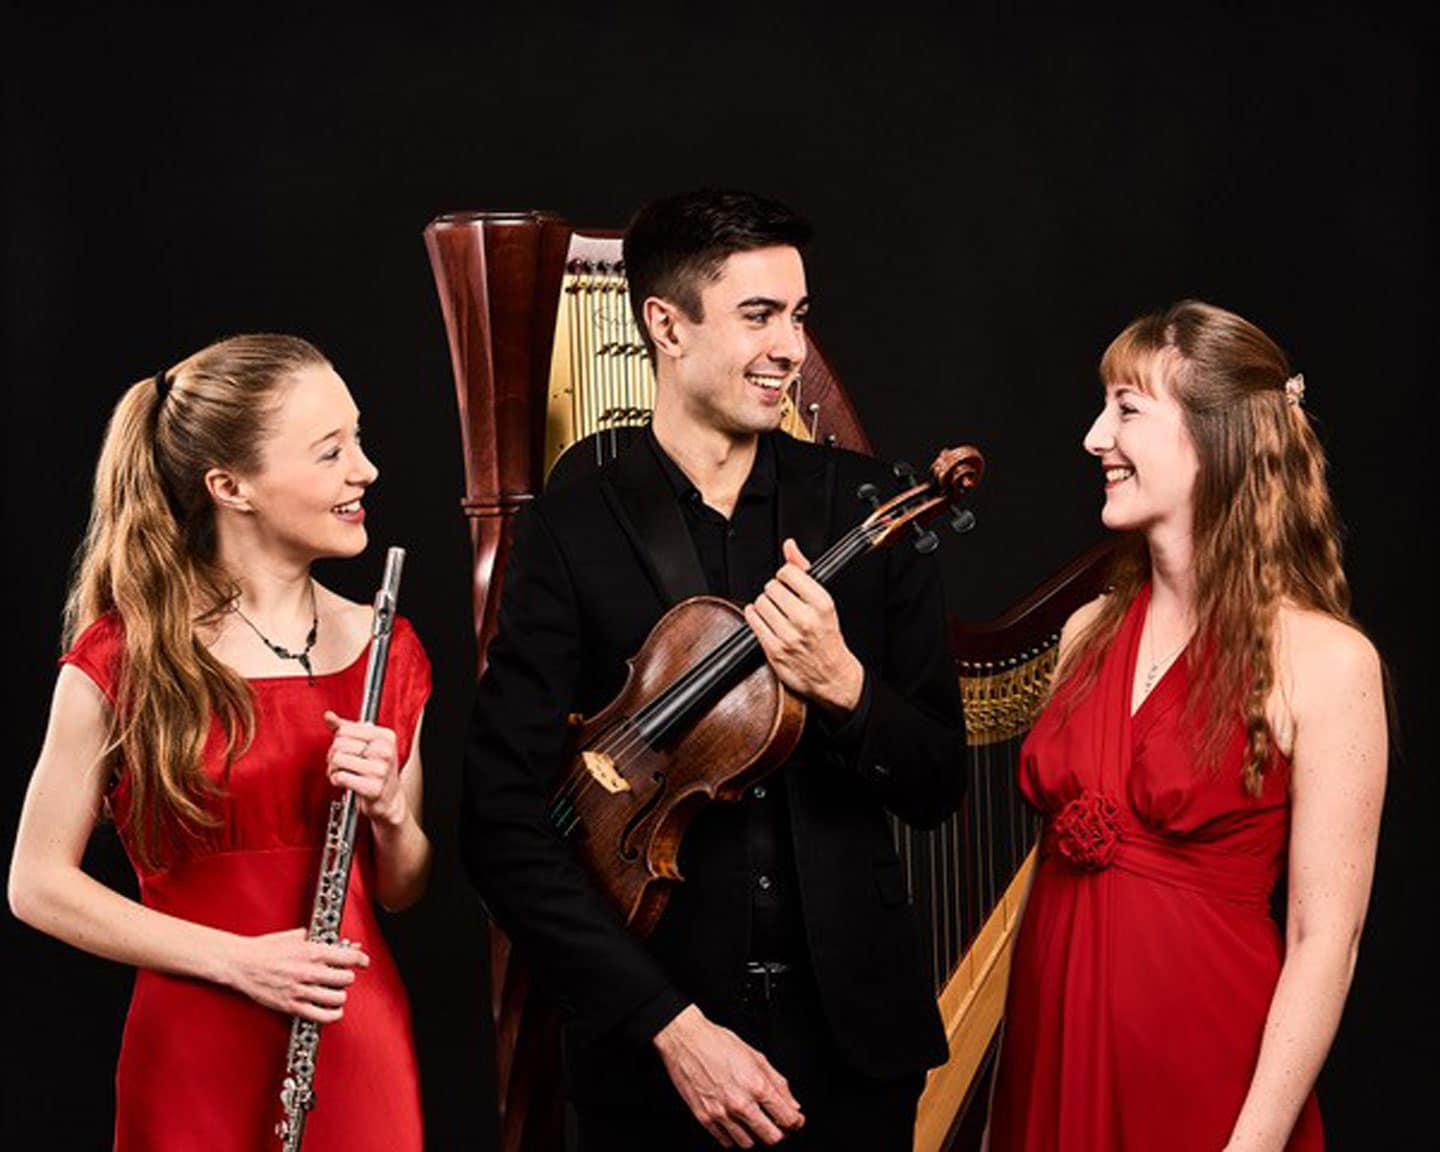 Chichester Cathedral's Lunchtime Concert series: The Aurora Trio - Chichester Cathedral music events